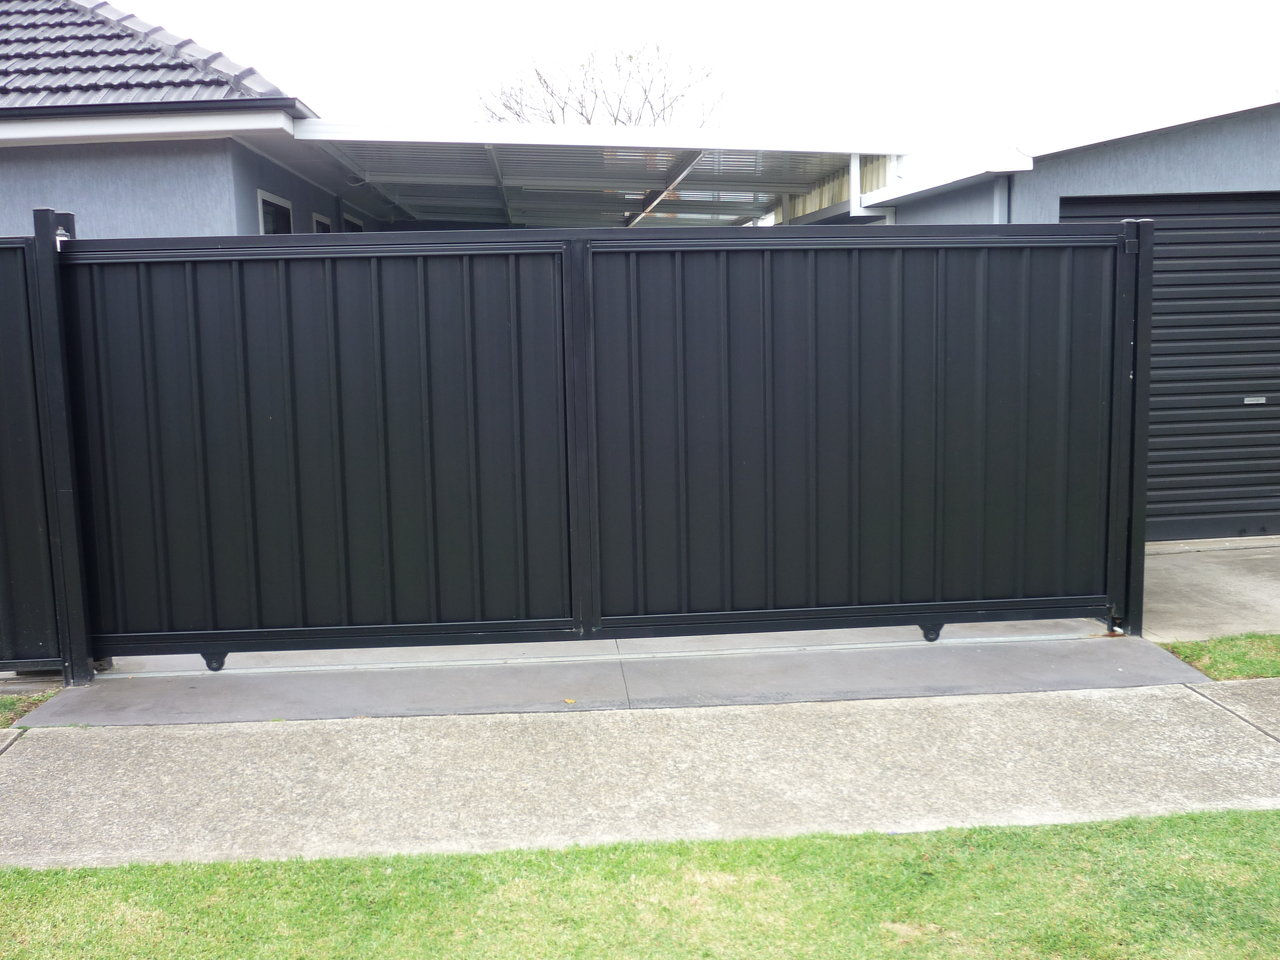 Fence Panels Created By Fencingsydney Based On Toy